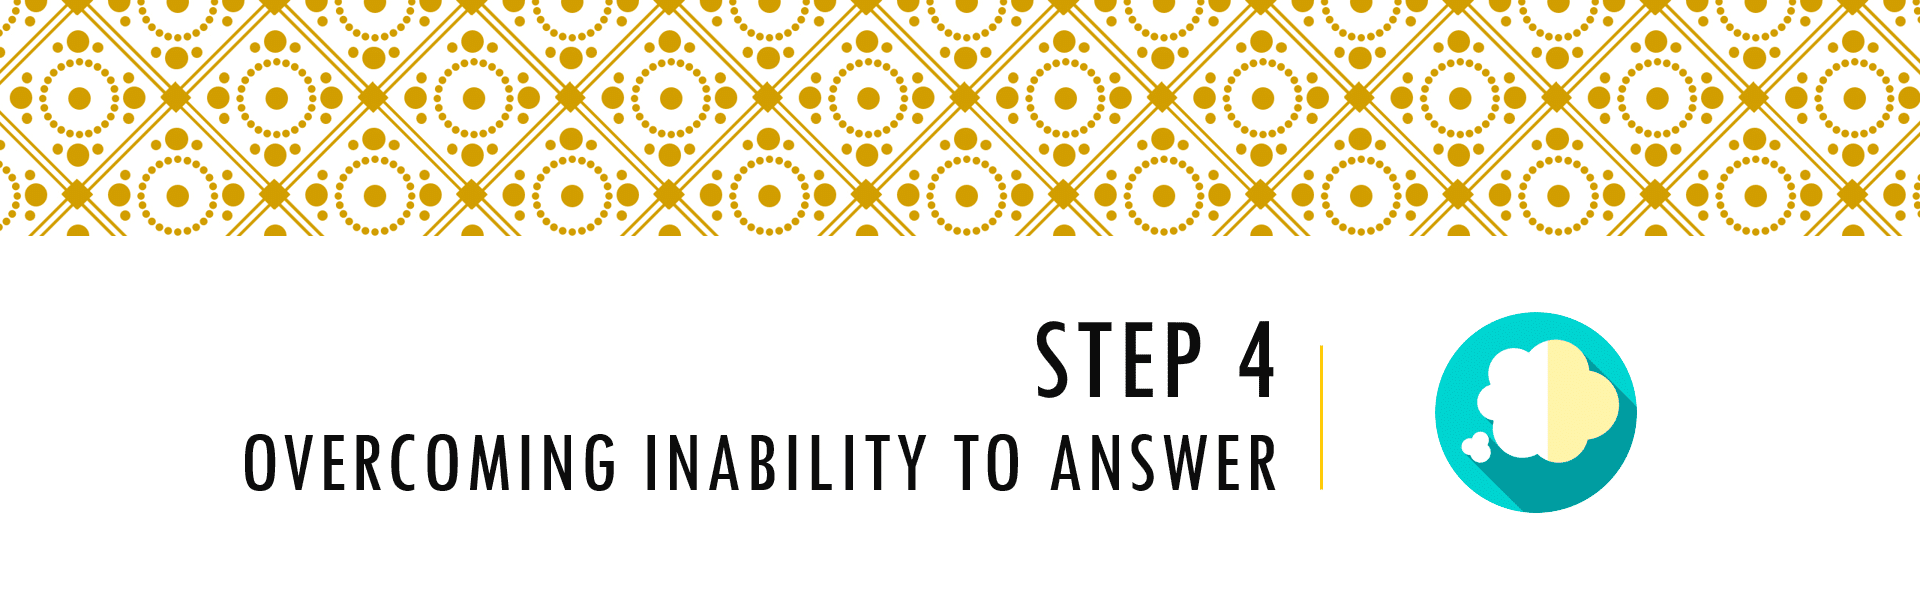 Questionnaire Design Process Step 4 - Overcoming Inability to Answer